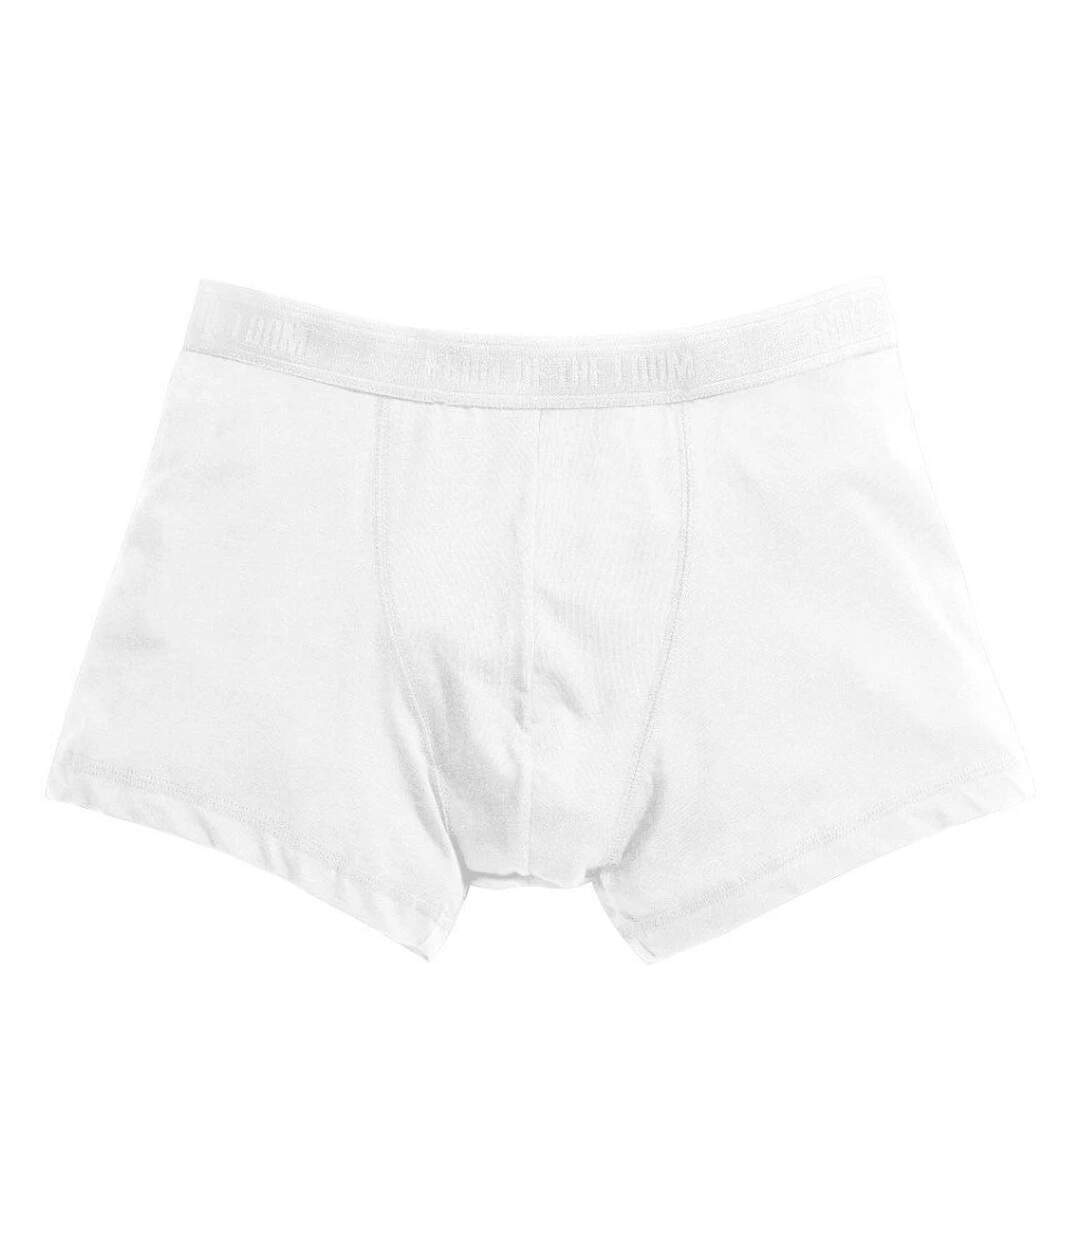 Fruit Of The Loom Mens Classic Shorty Cotton Rich Boxer Shorts (Pack Of 2) (White) - UTBC3357